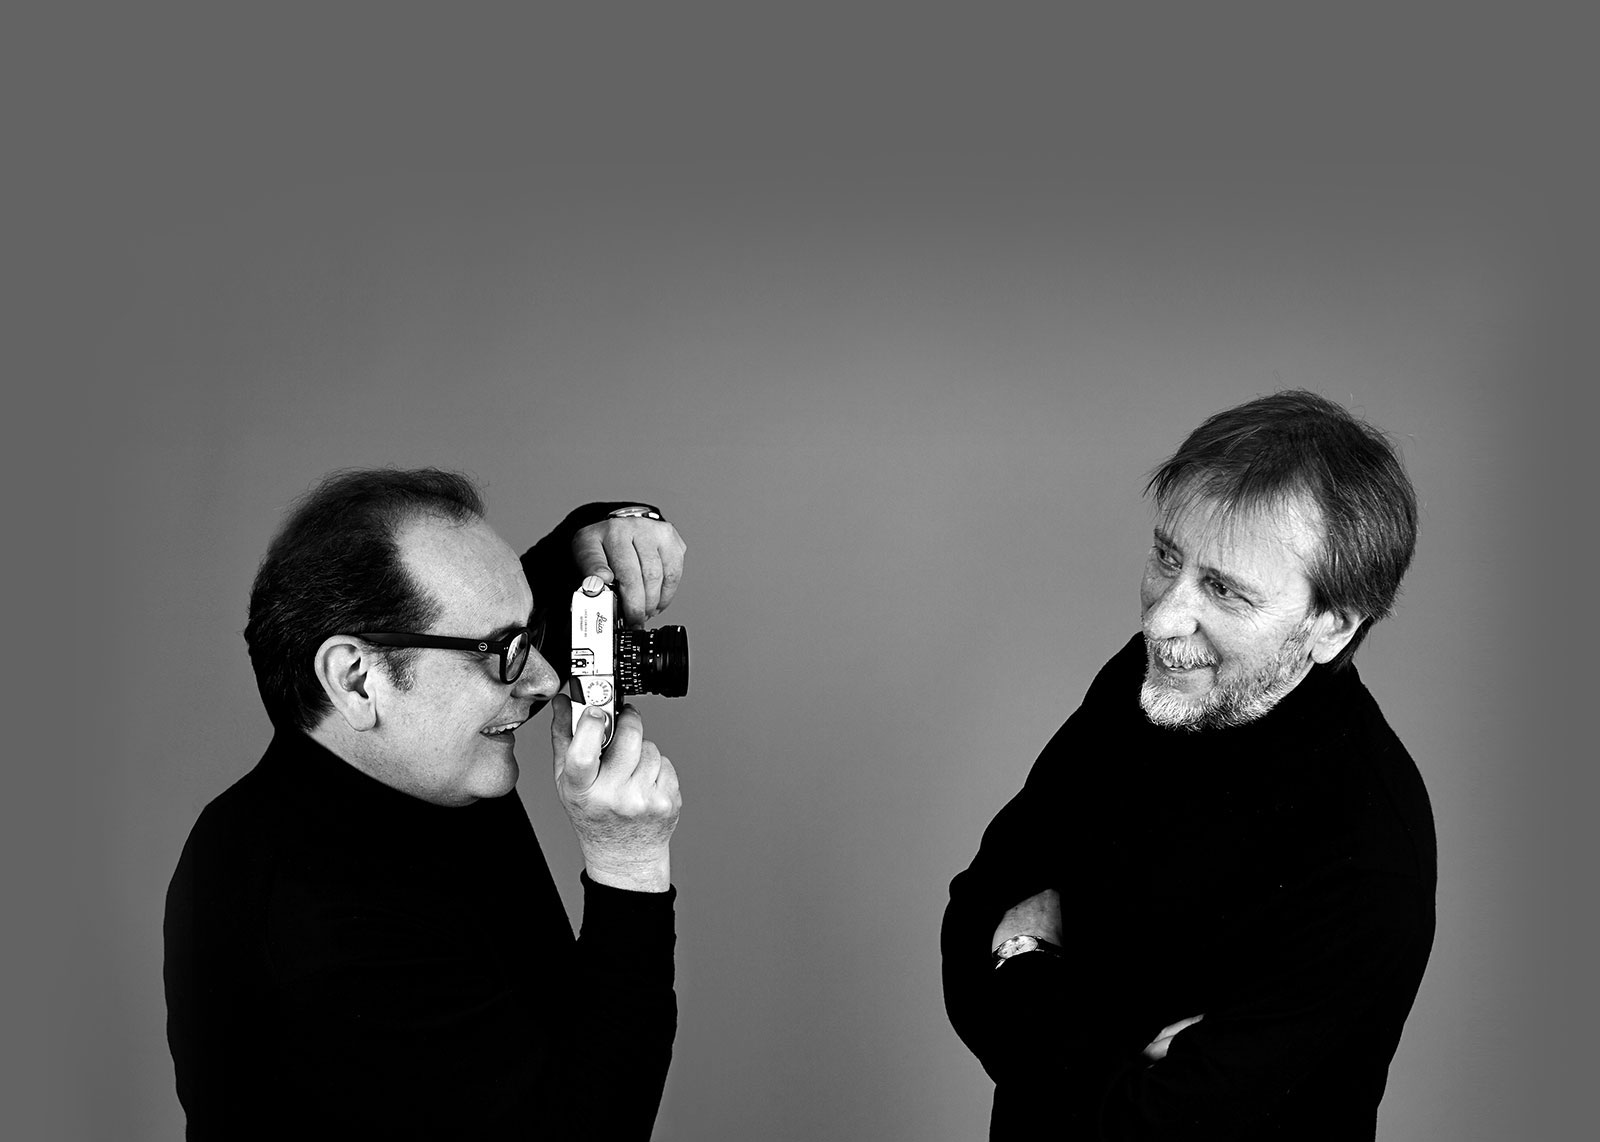 Alberto Bovo and Sandro Manente - Founders of Hangar Design Group